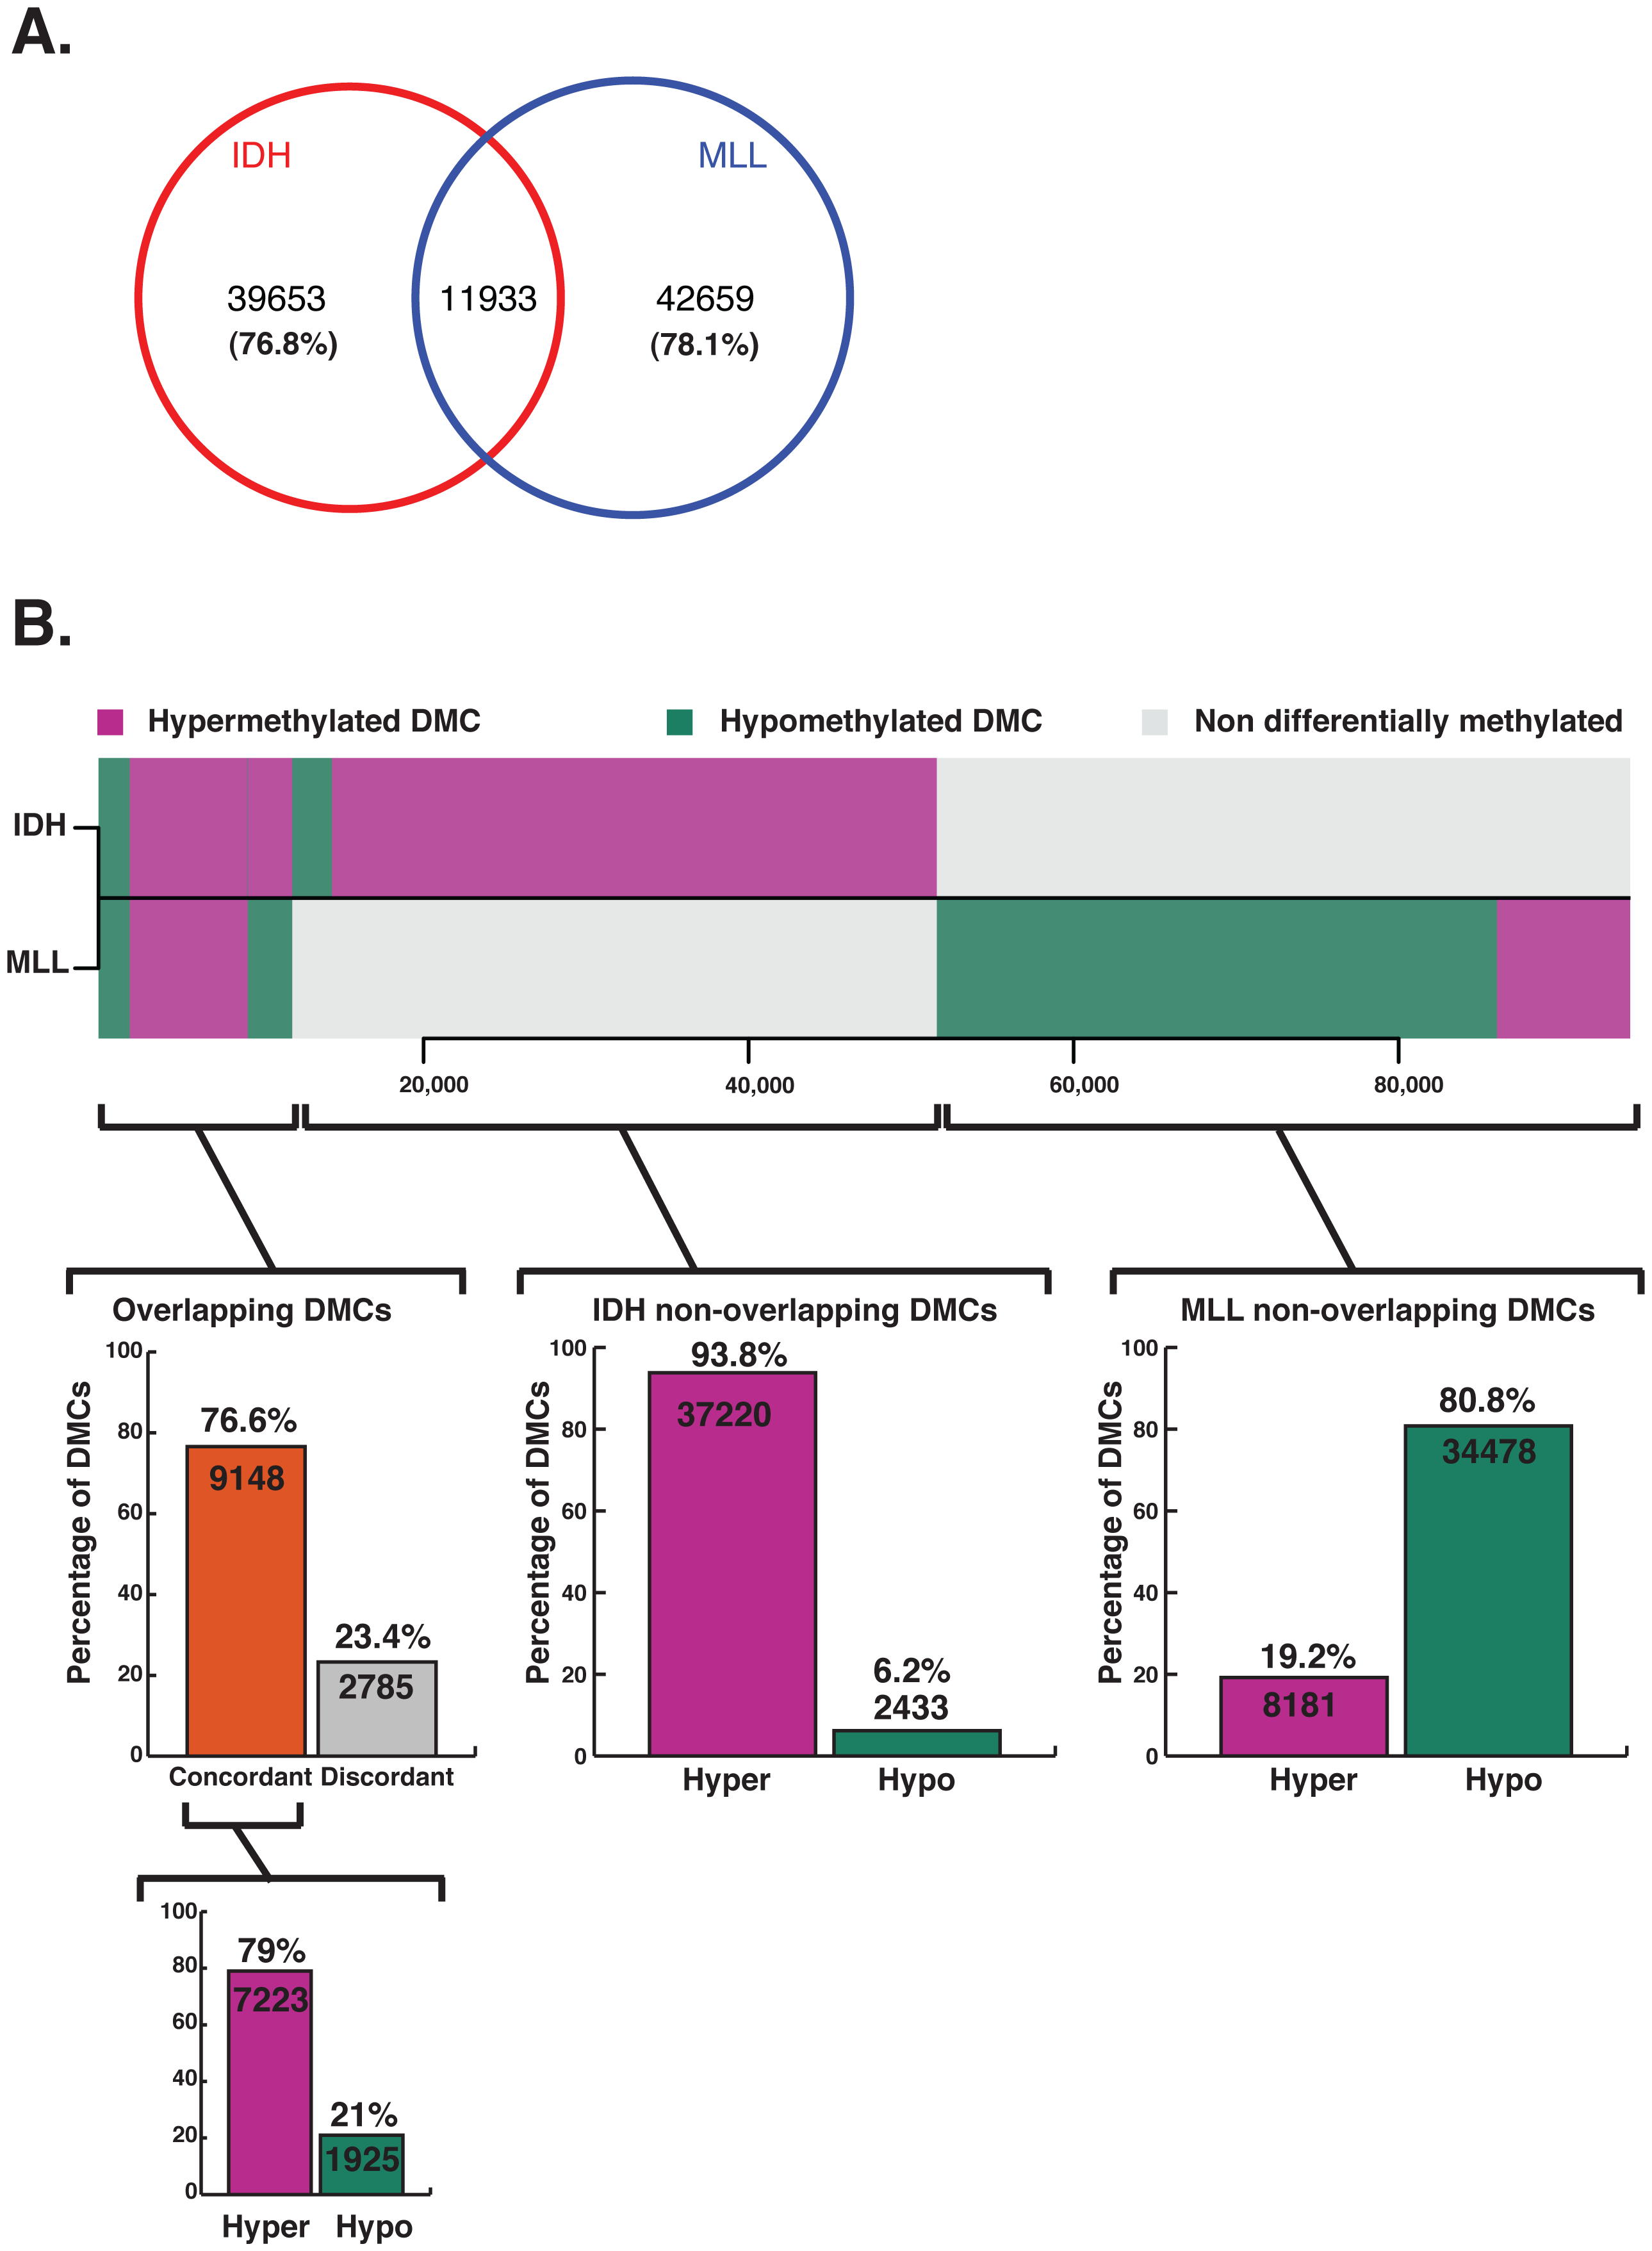 Aberrant methylation targets a minimally overlapping set of CpGs in IDH-mut and MLLr AMLs.